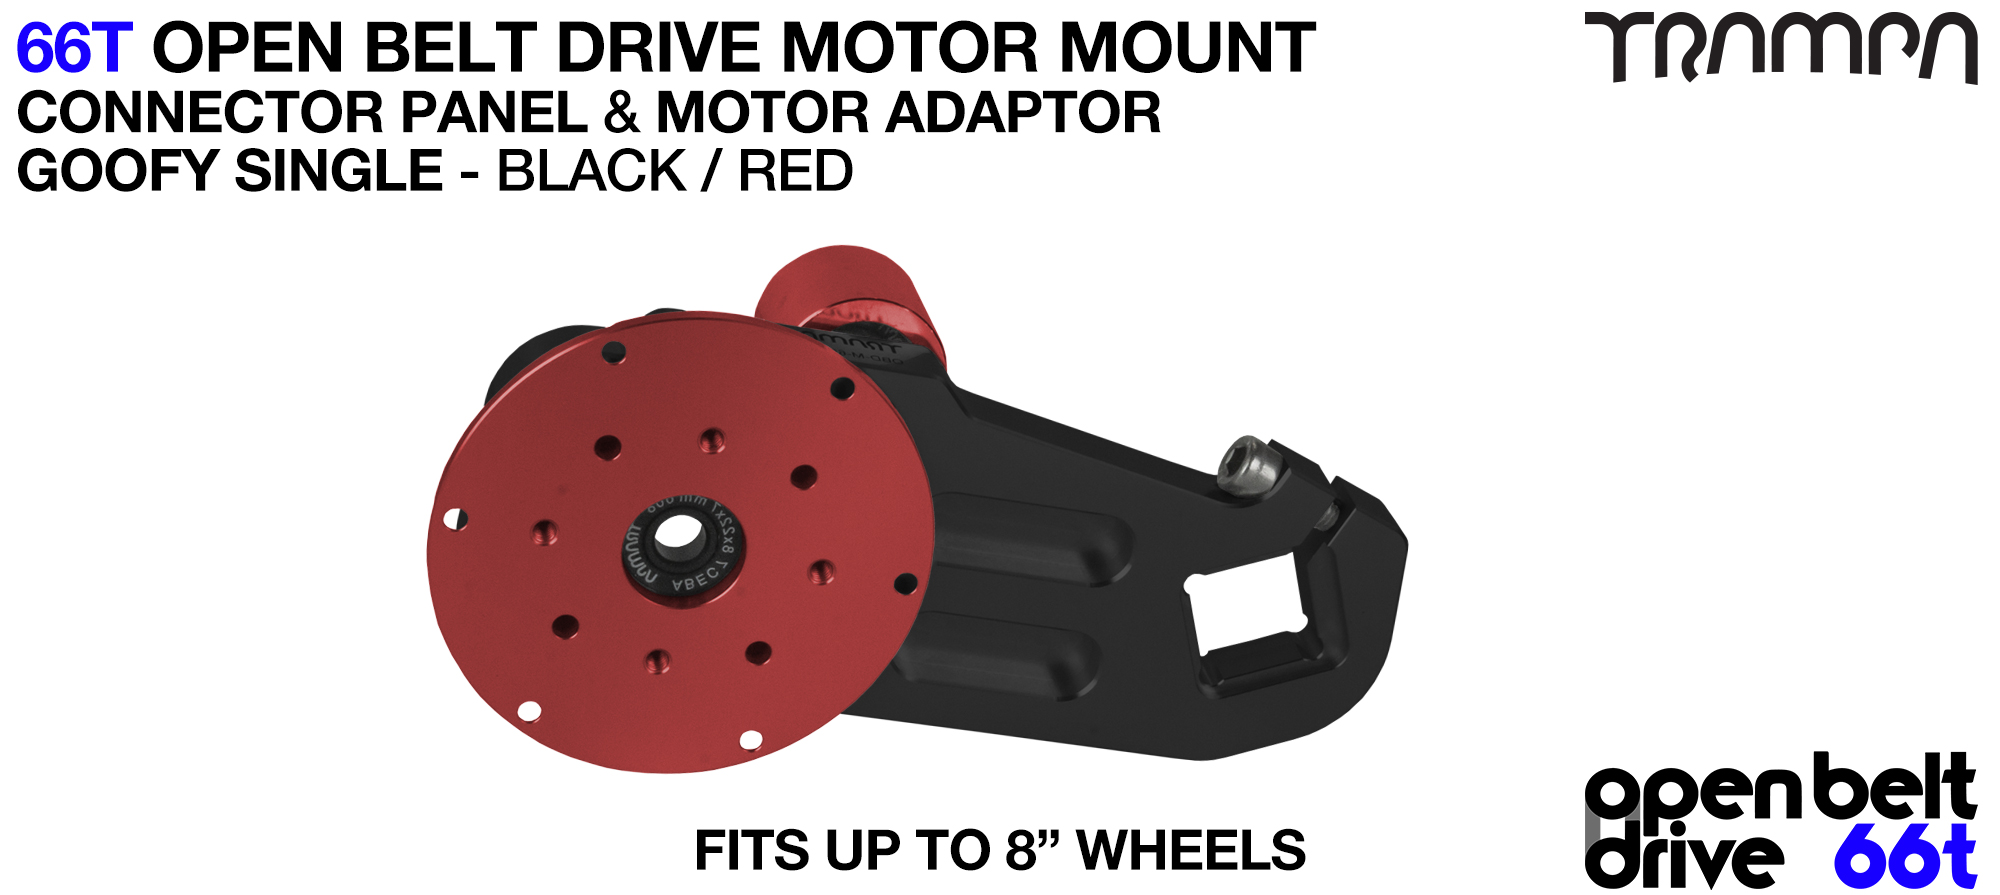 66T OPEN BELT DRIVE Motor Mount & Motor Adaptor - SINGLE RED